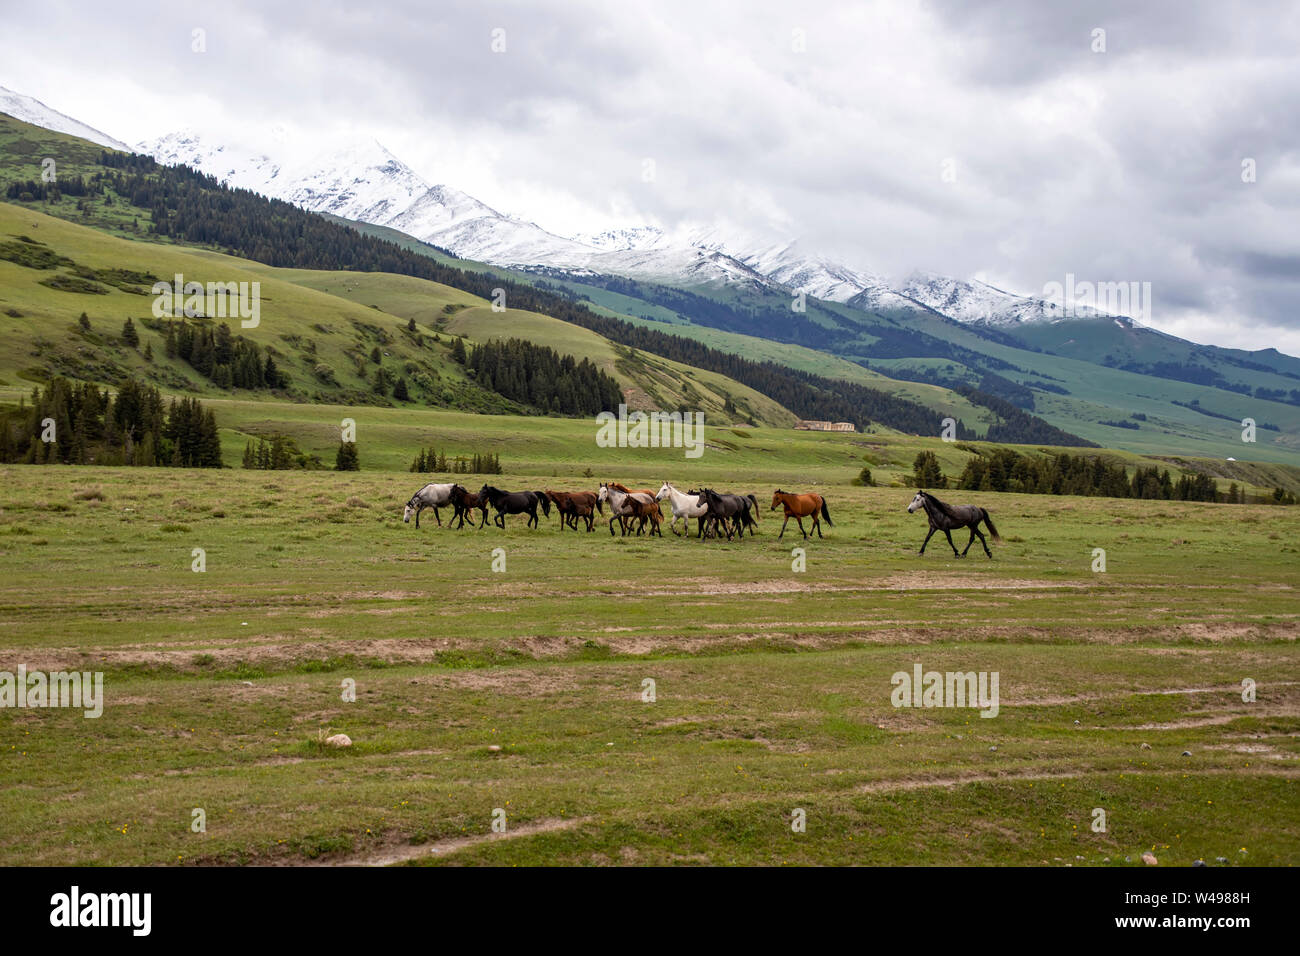 Herd of horses grazing on a green pasture against the backdrop of mountains covered with forest and with snow-capped peaks Stock Photo